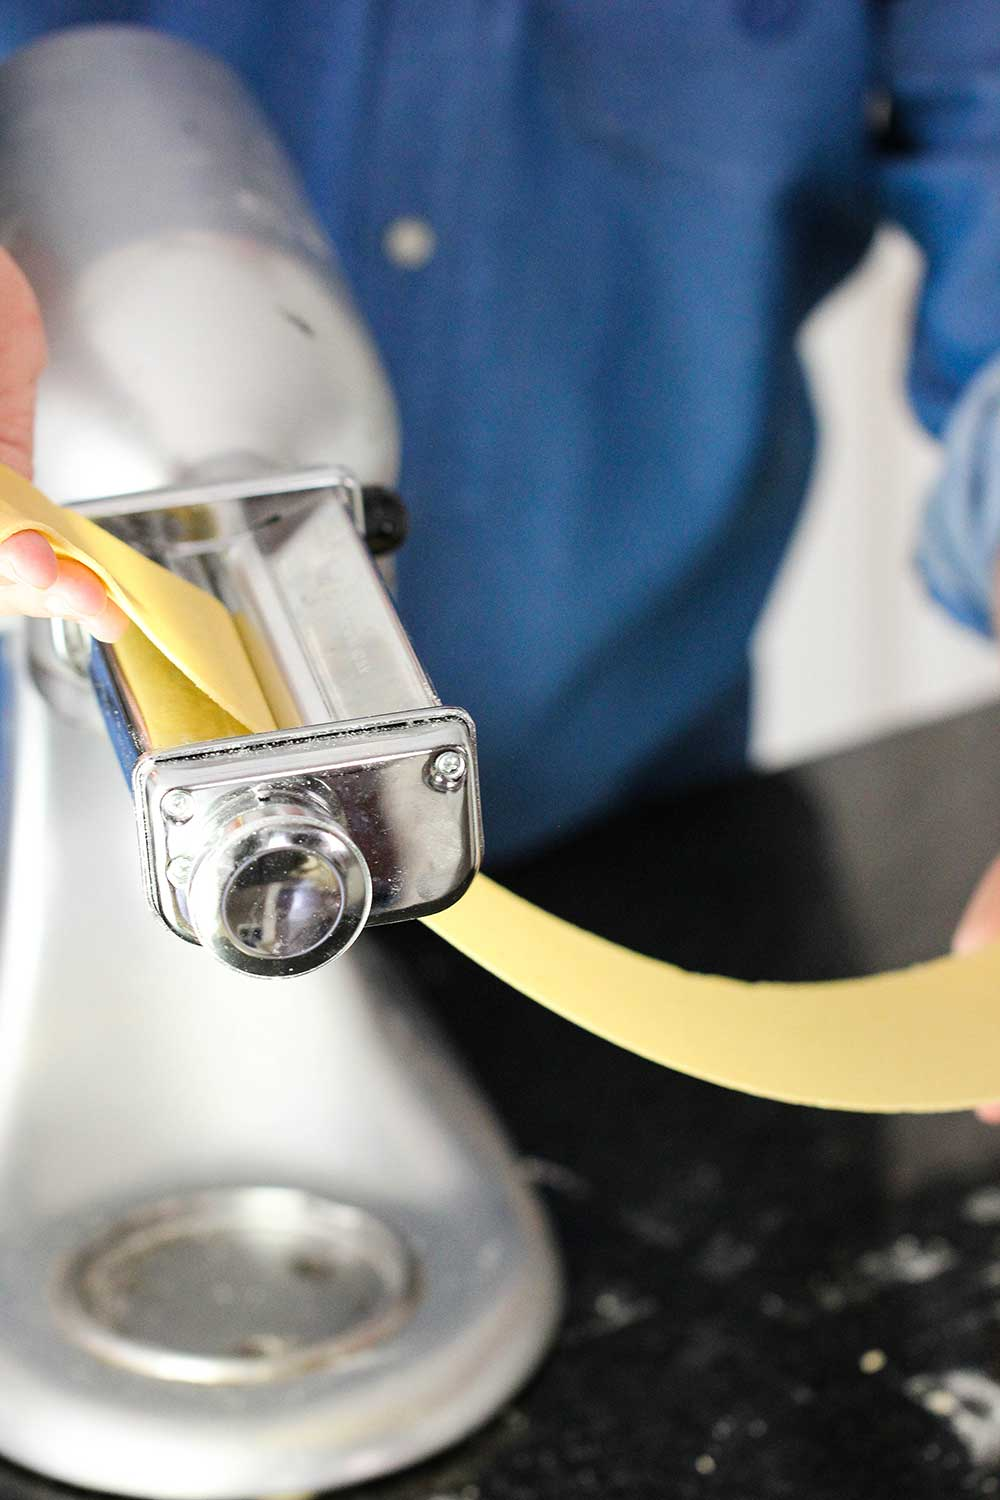 A sheet of homemade pasta being put through a pasta roller on a stand mixer.